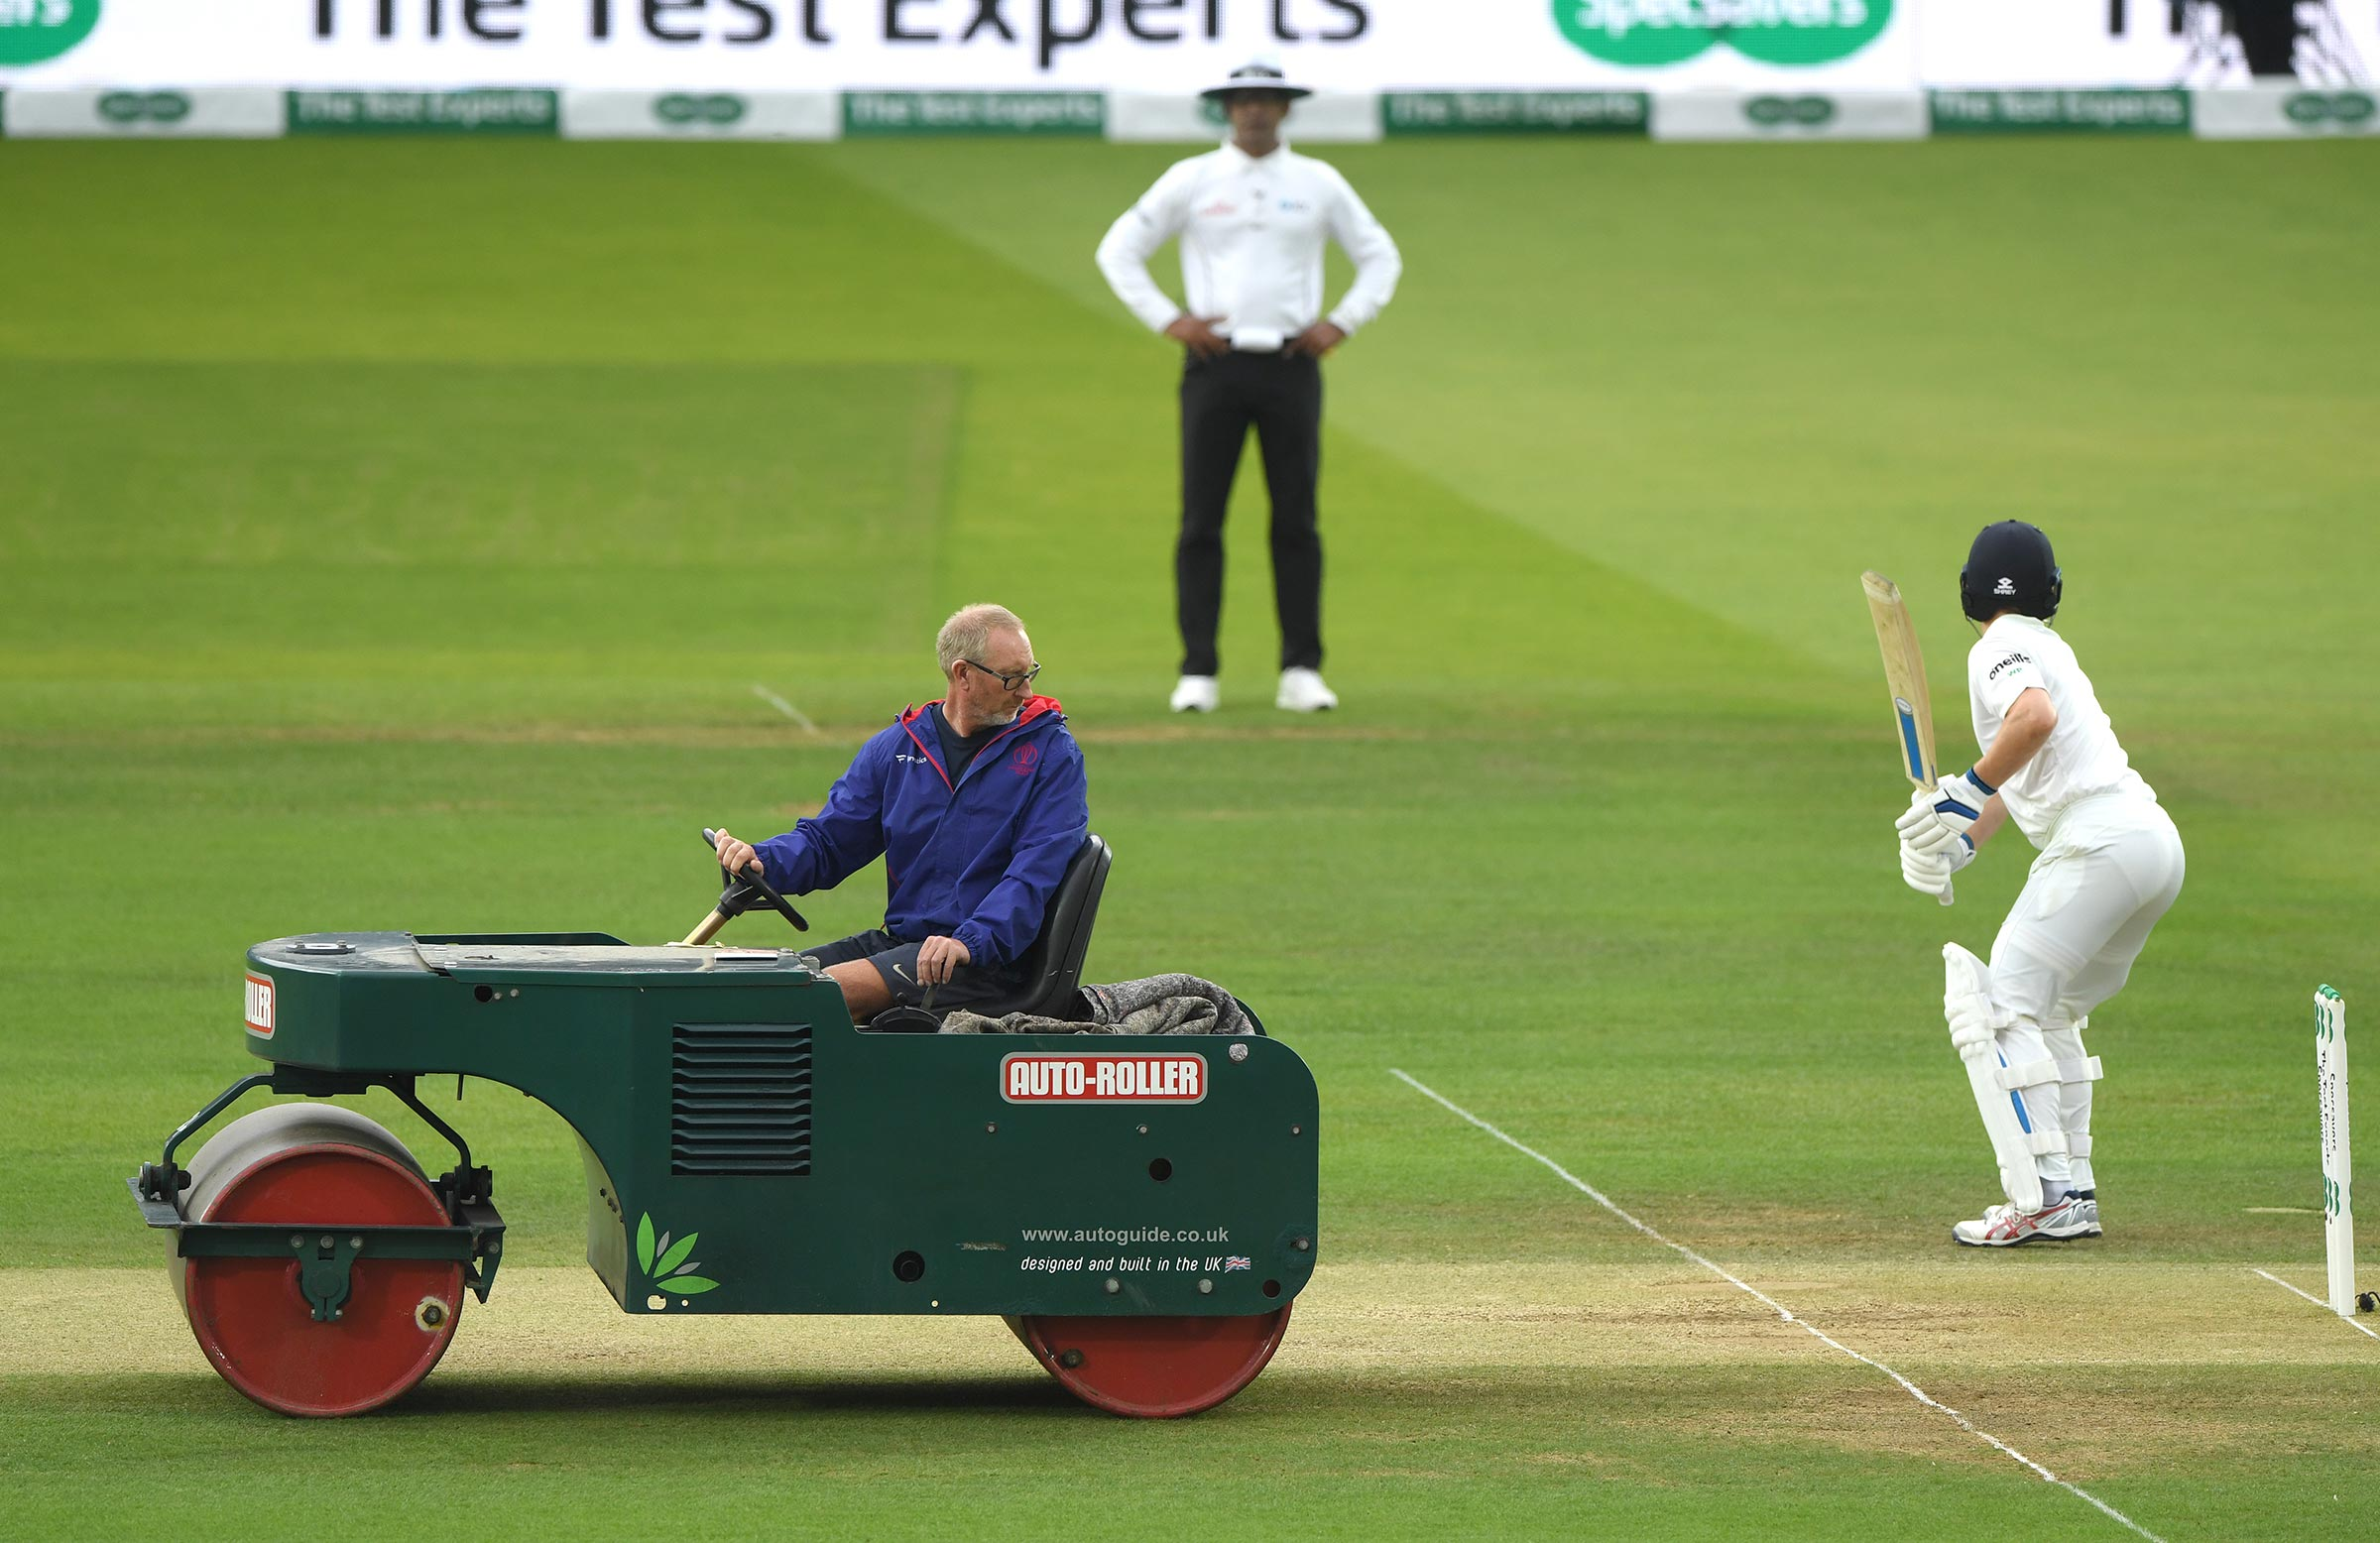 There will be plenty of attention on the Lord's pitch next week // Getty